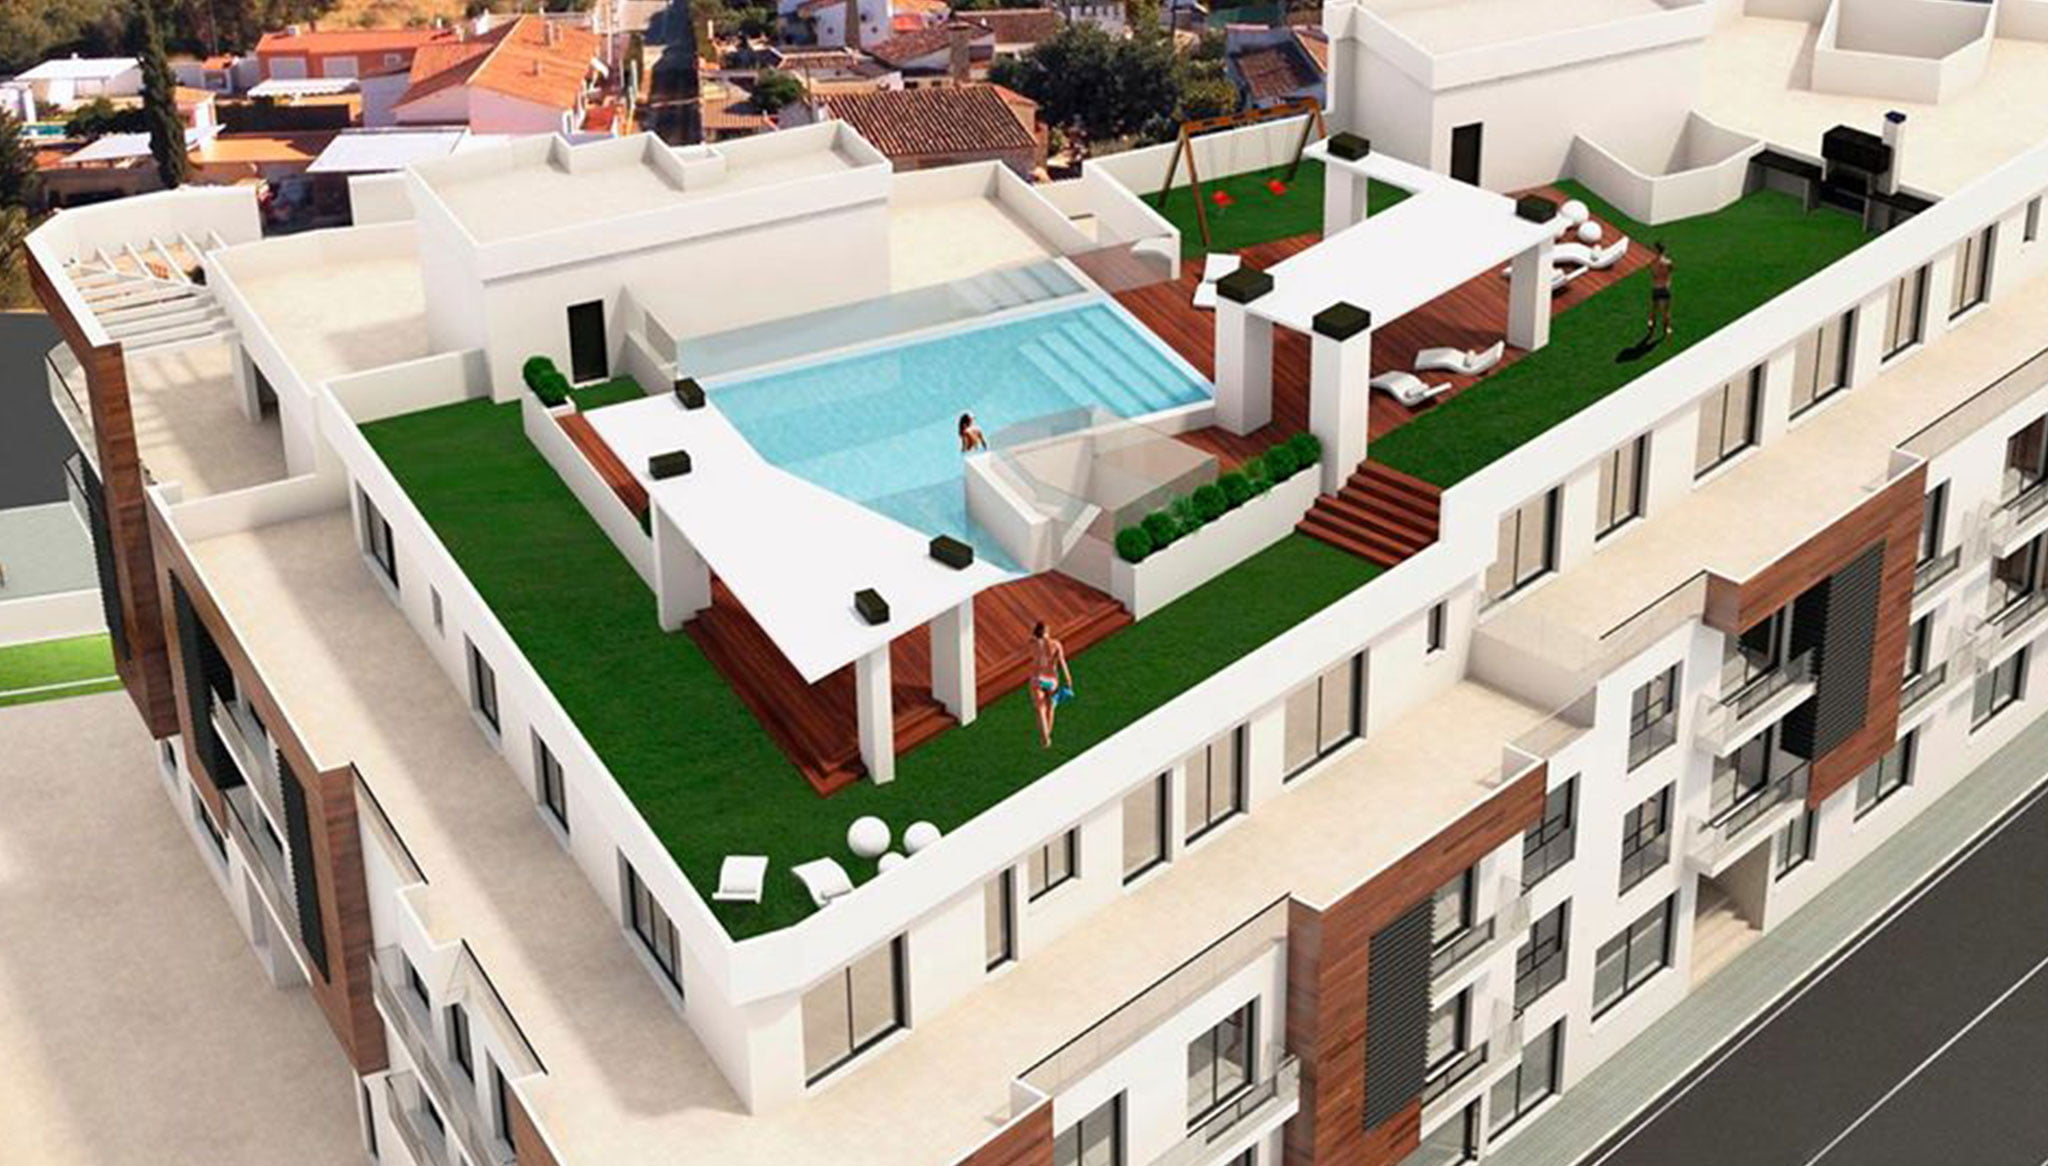 Model of apartments for sale - Fine & Country Costa Blanca North